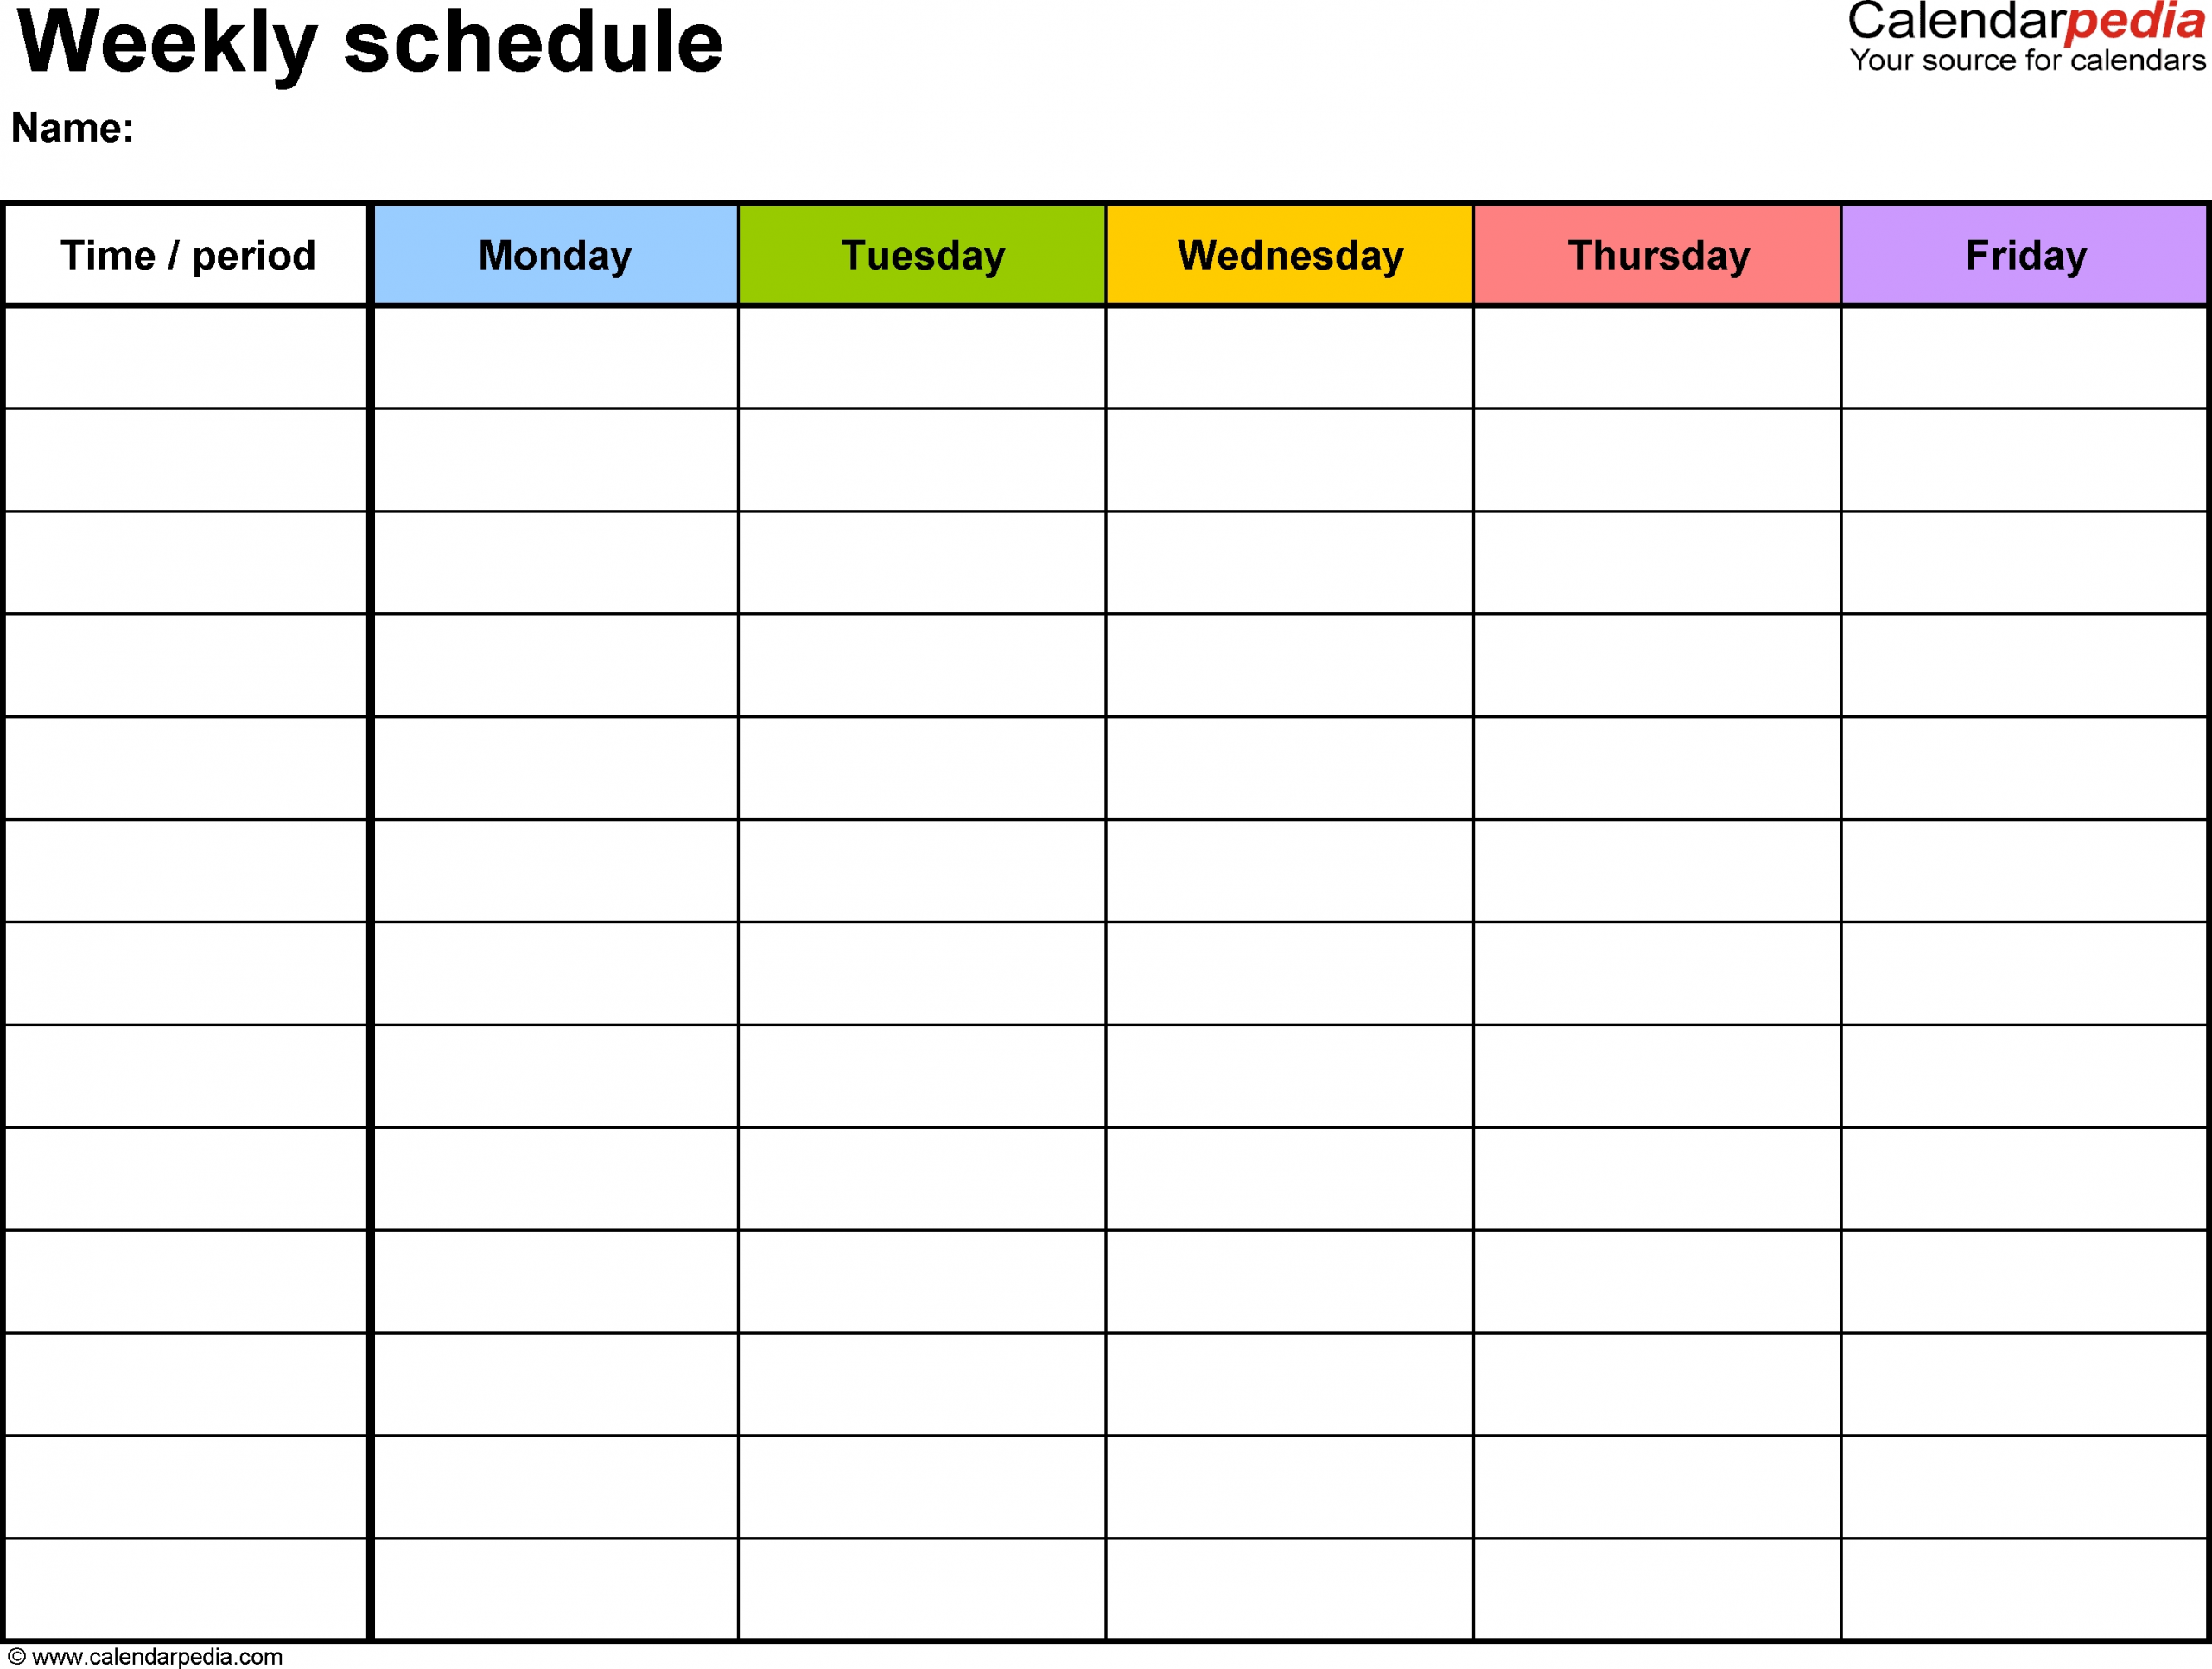 Printable Weekly Schedule With Hours Monday To Friday Free Printable Calendar Mon To Fri